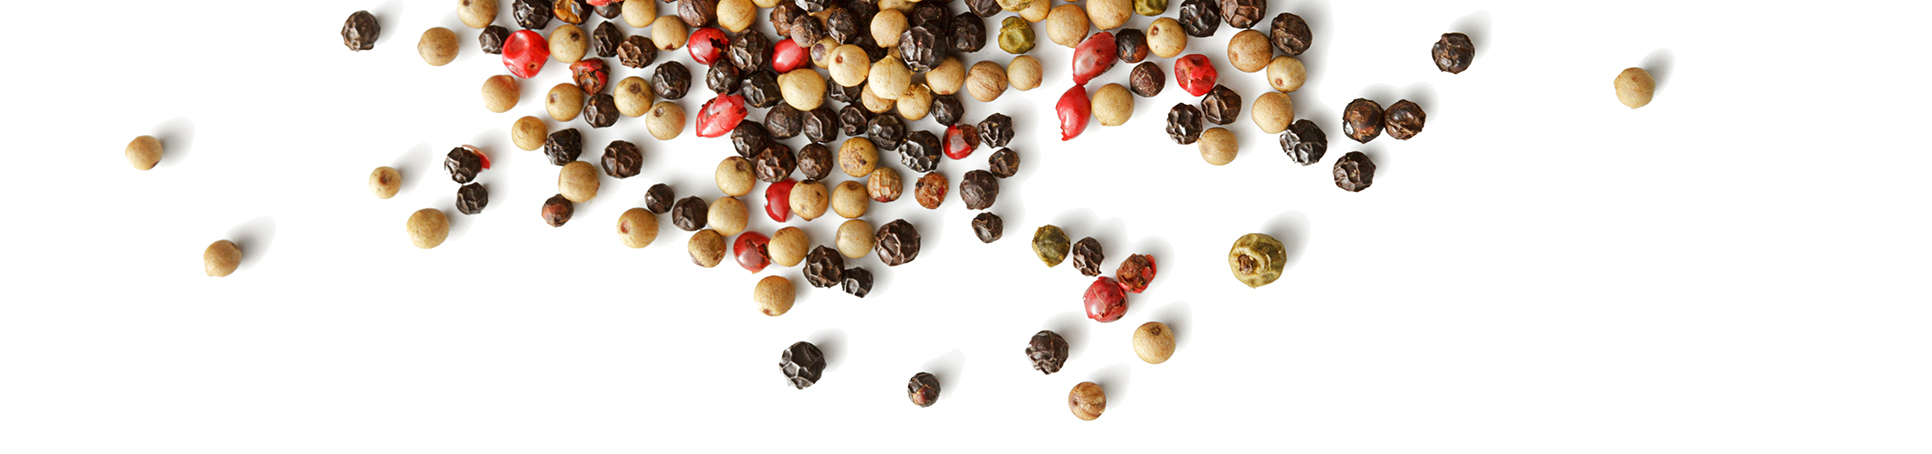 peppercorns-120.jpg